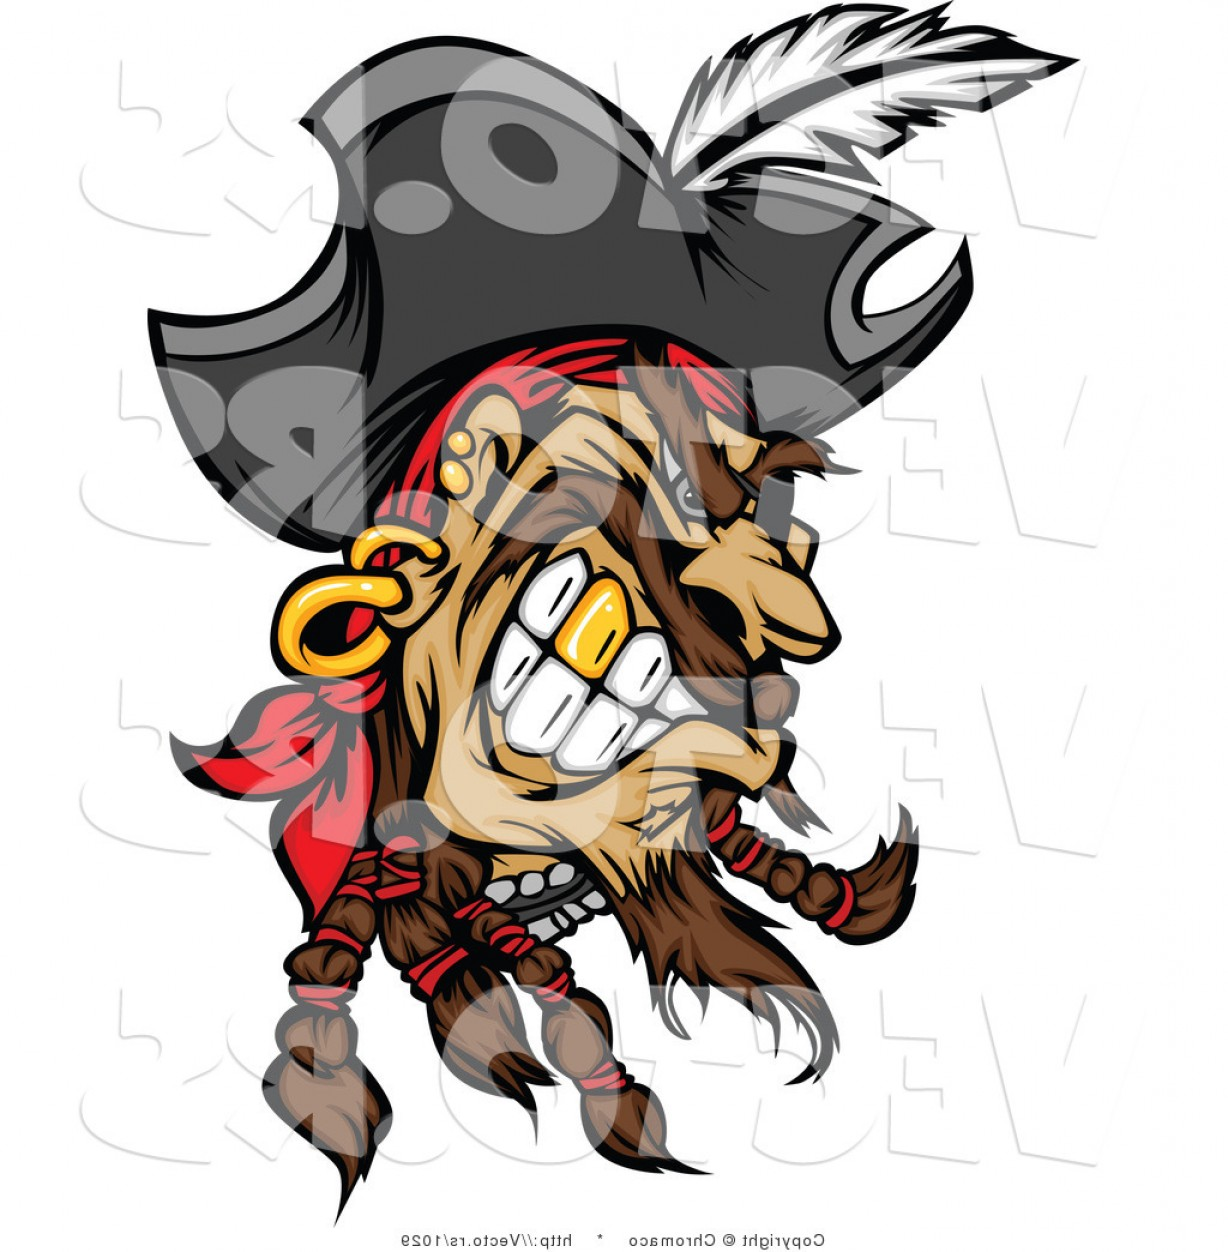 Cartoon Pirate Vector Art: Cartoon Vector Of A Grinning Cartoon Pirate With Gold Tooth By Chromaco